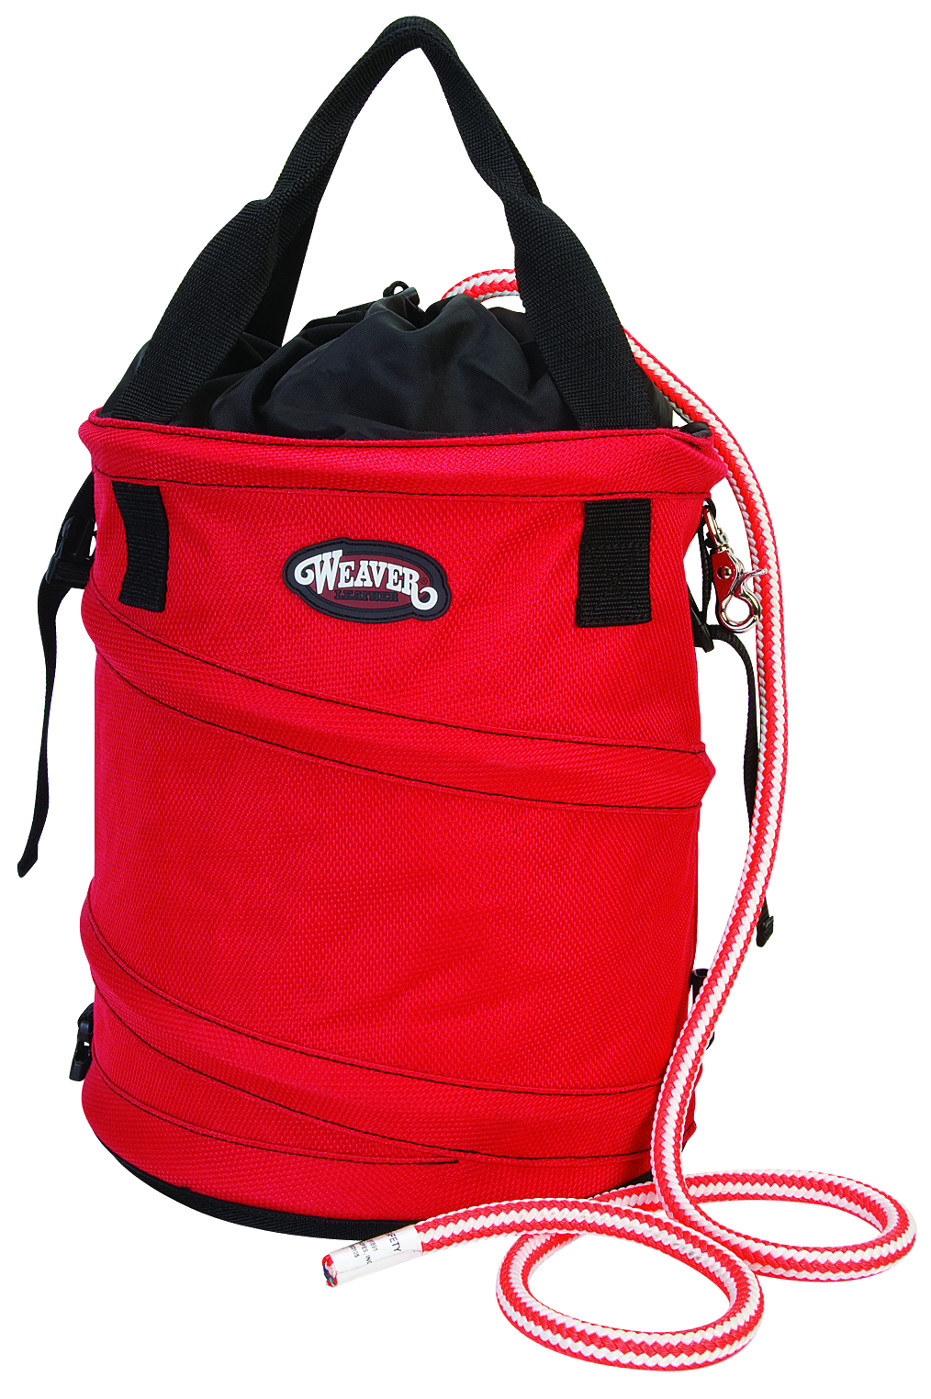 Collapsible Basic Rope Bag